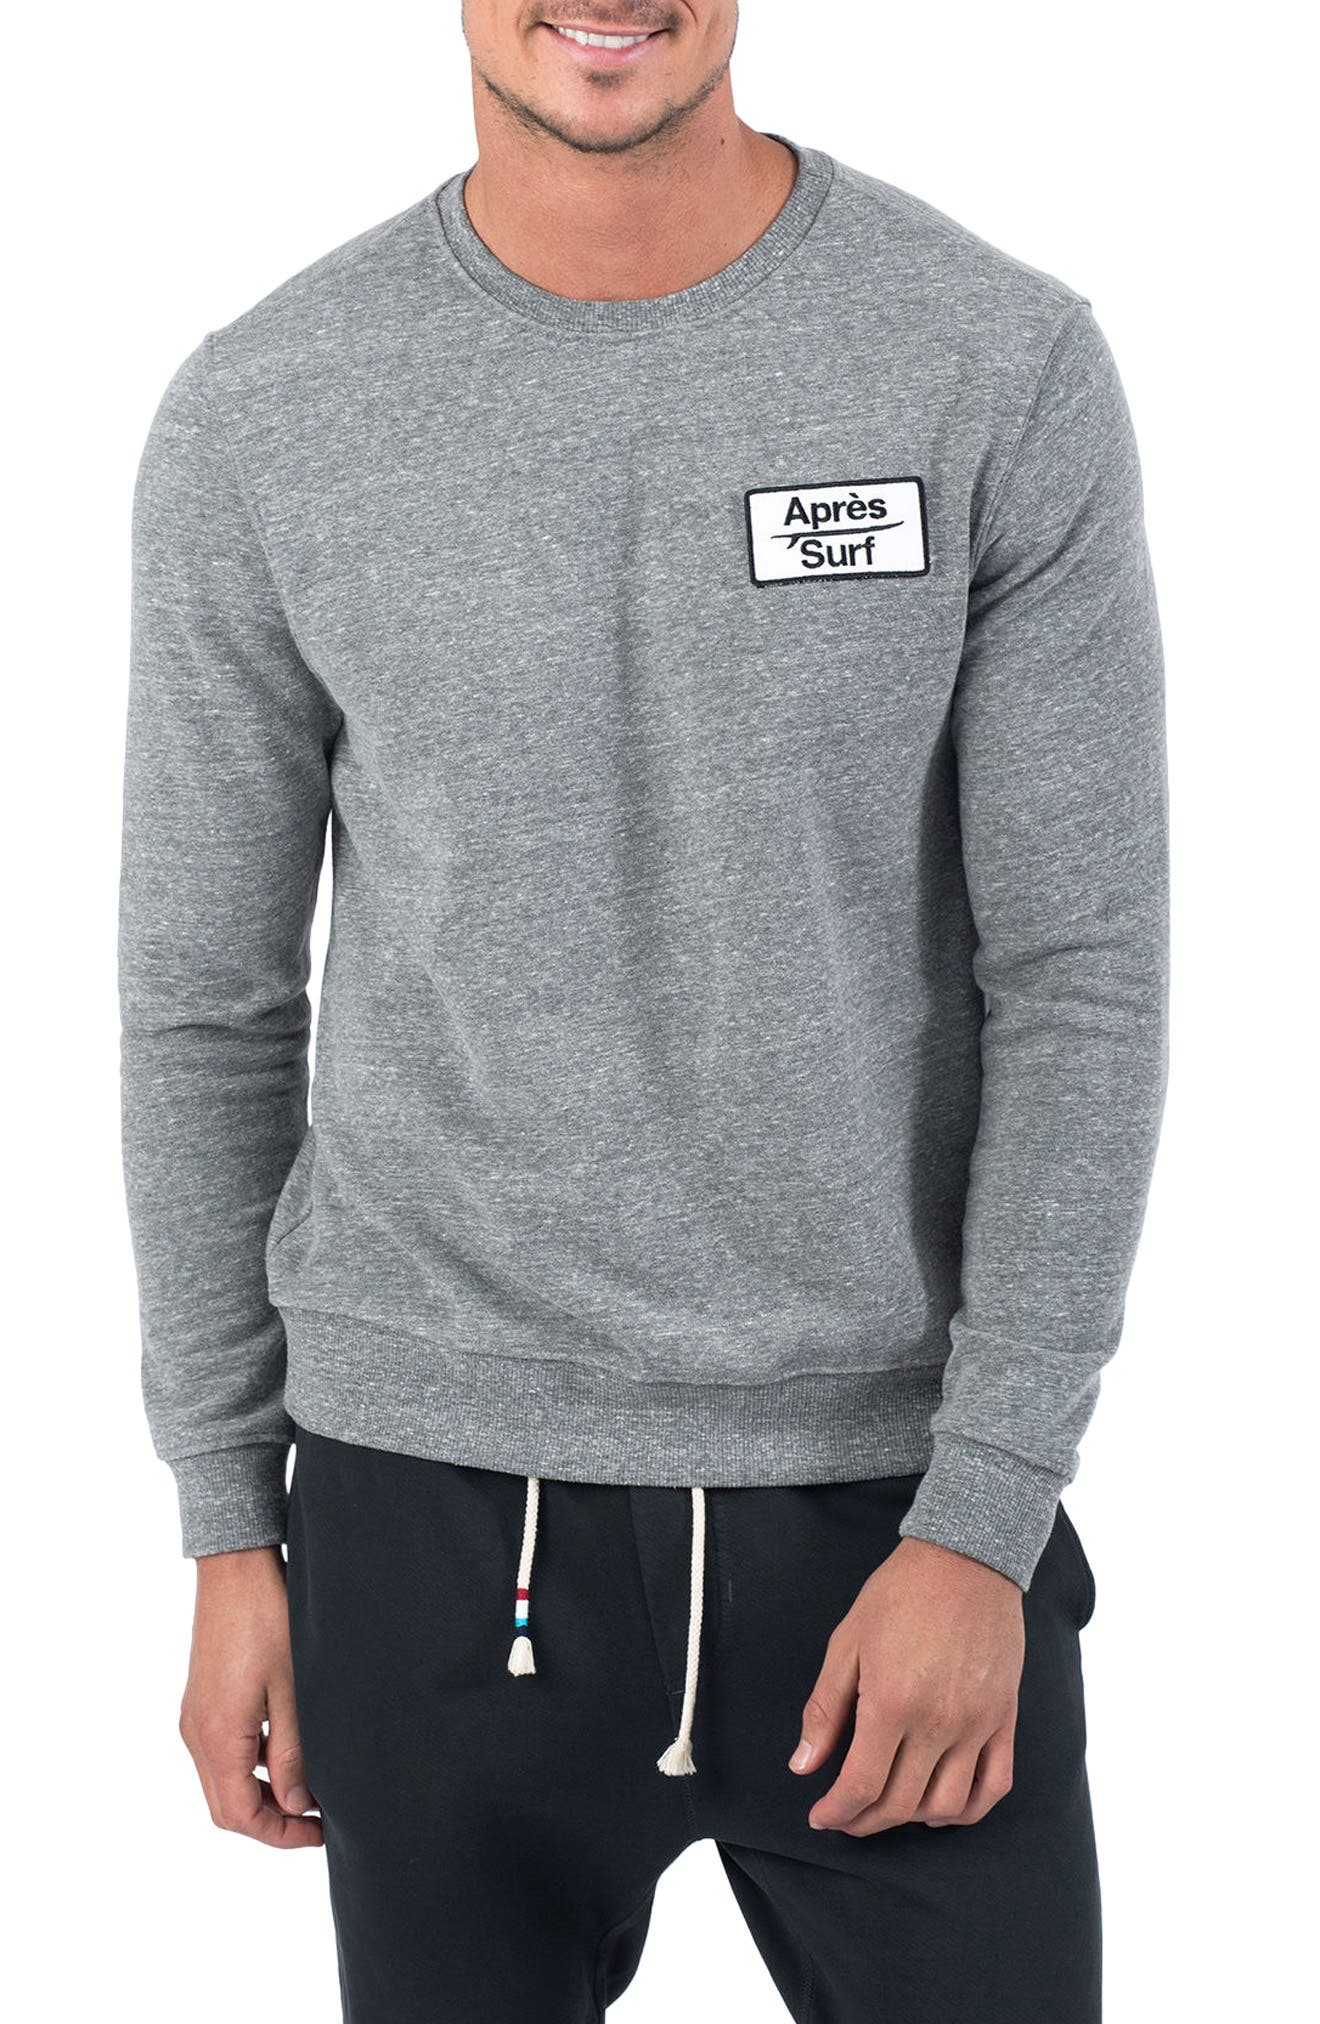 Sol Angeles Aprés Surf Sweatshirt